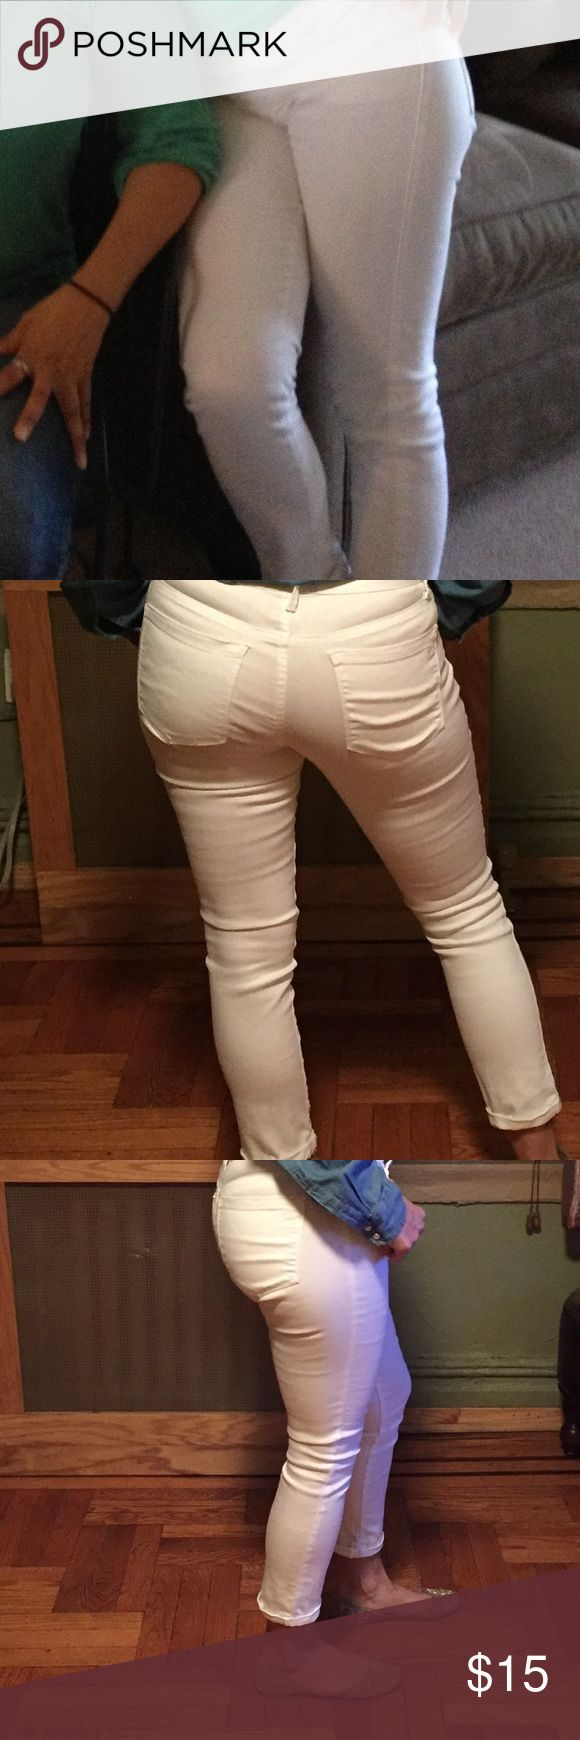 Jessica Simpson white jeans  skinny cropped White jeans Jessica Simpson no stains in good condition .. skinny cropped  .. looks great with slip on sneakers or sandals ... Jessica Simpson Jeans Ankle & Cropped